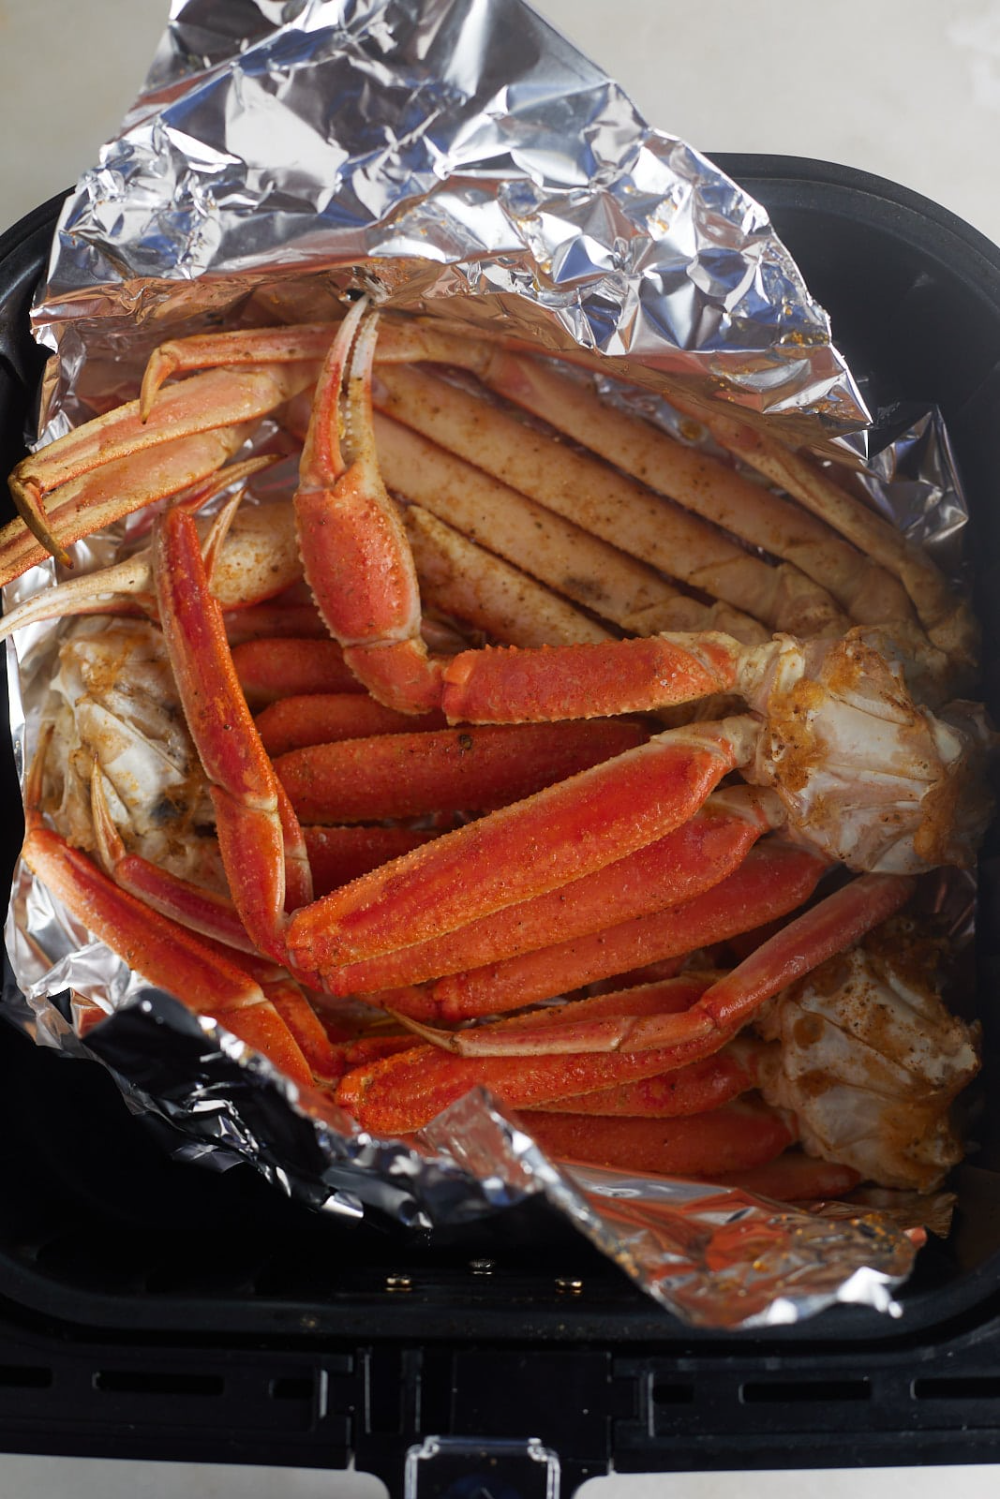 The Cooked Crab Legs On Foil In The Air Fryer Basket Air Fryer Dinner Recipes King Crab Legs Recipe Air Fryer Recipes Easy